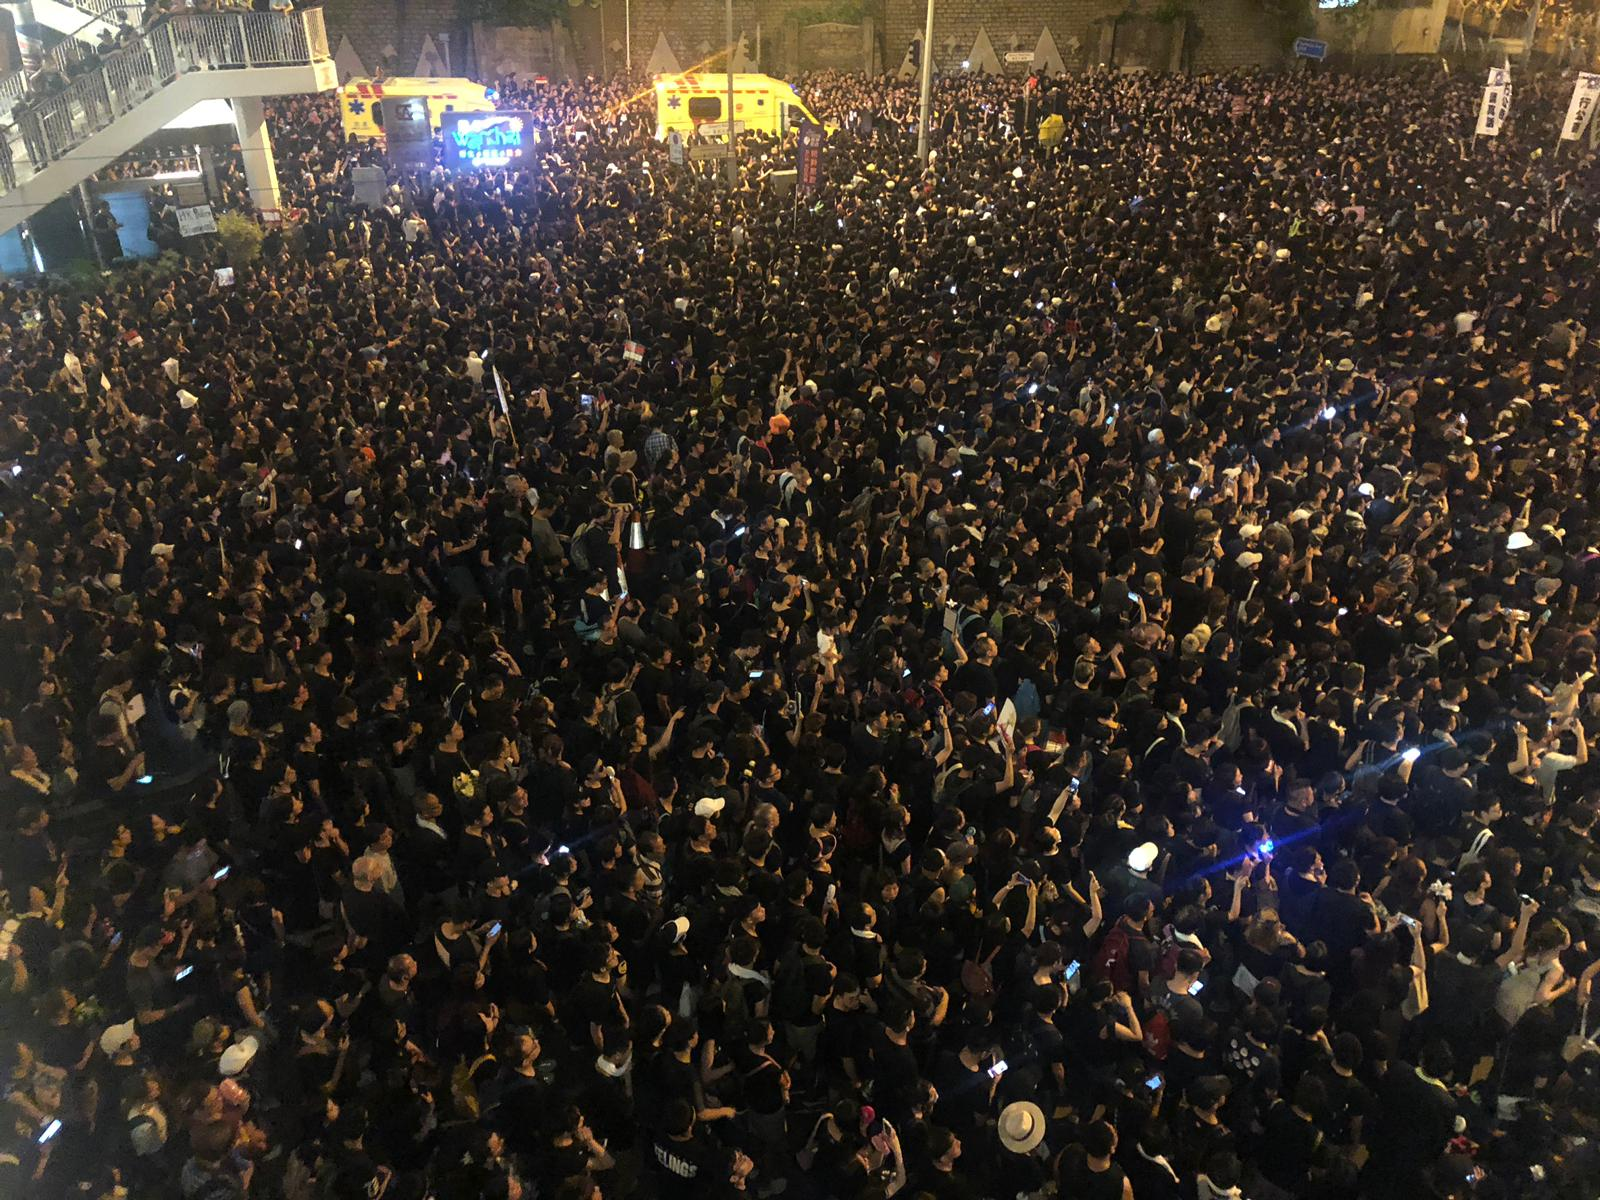 Crowds continue to surge through Hong Kong late into Sunday night.